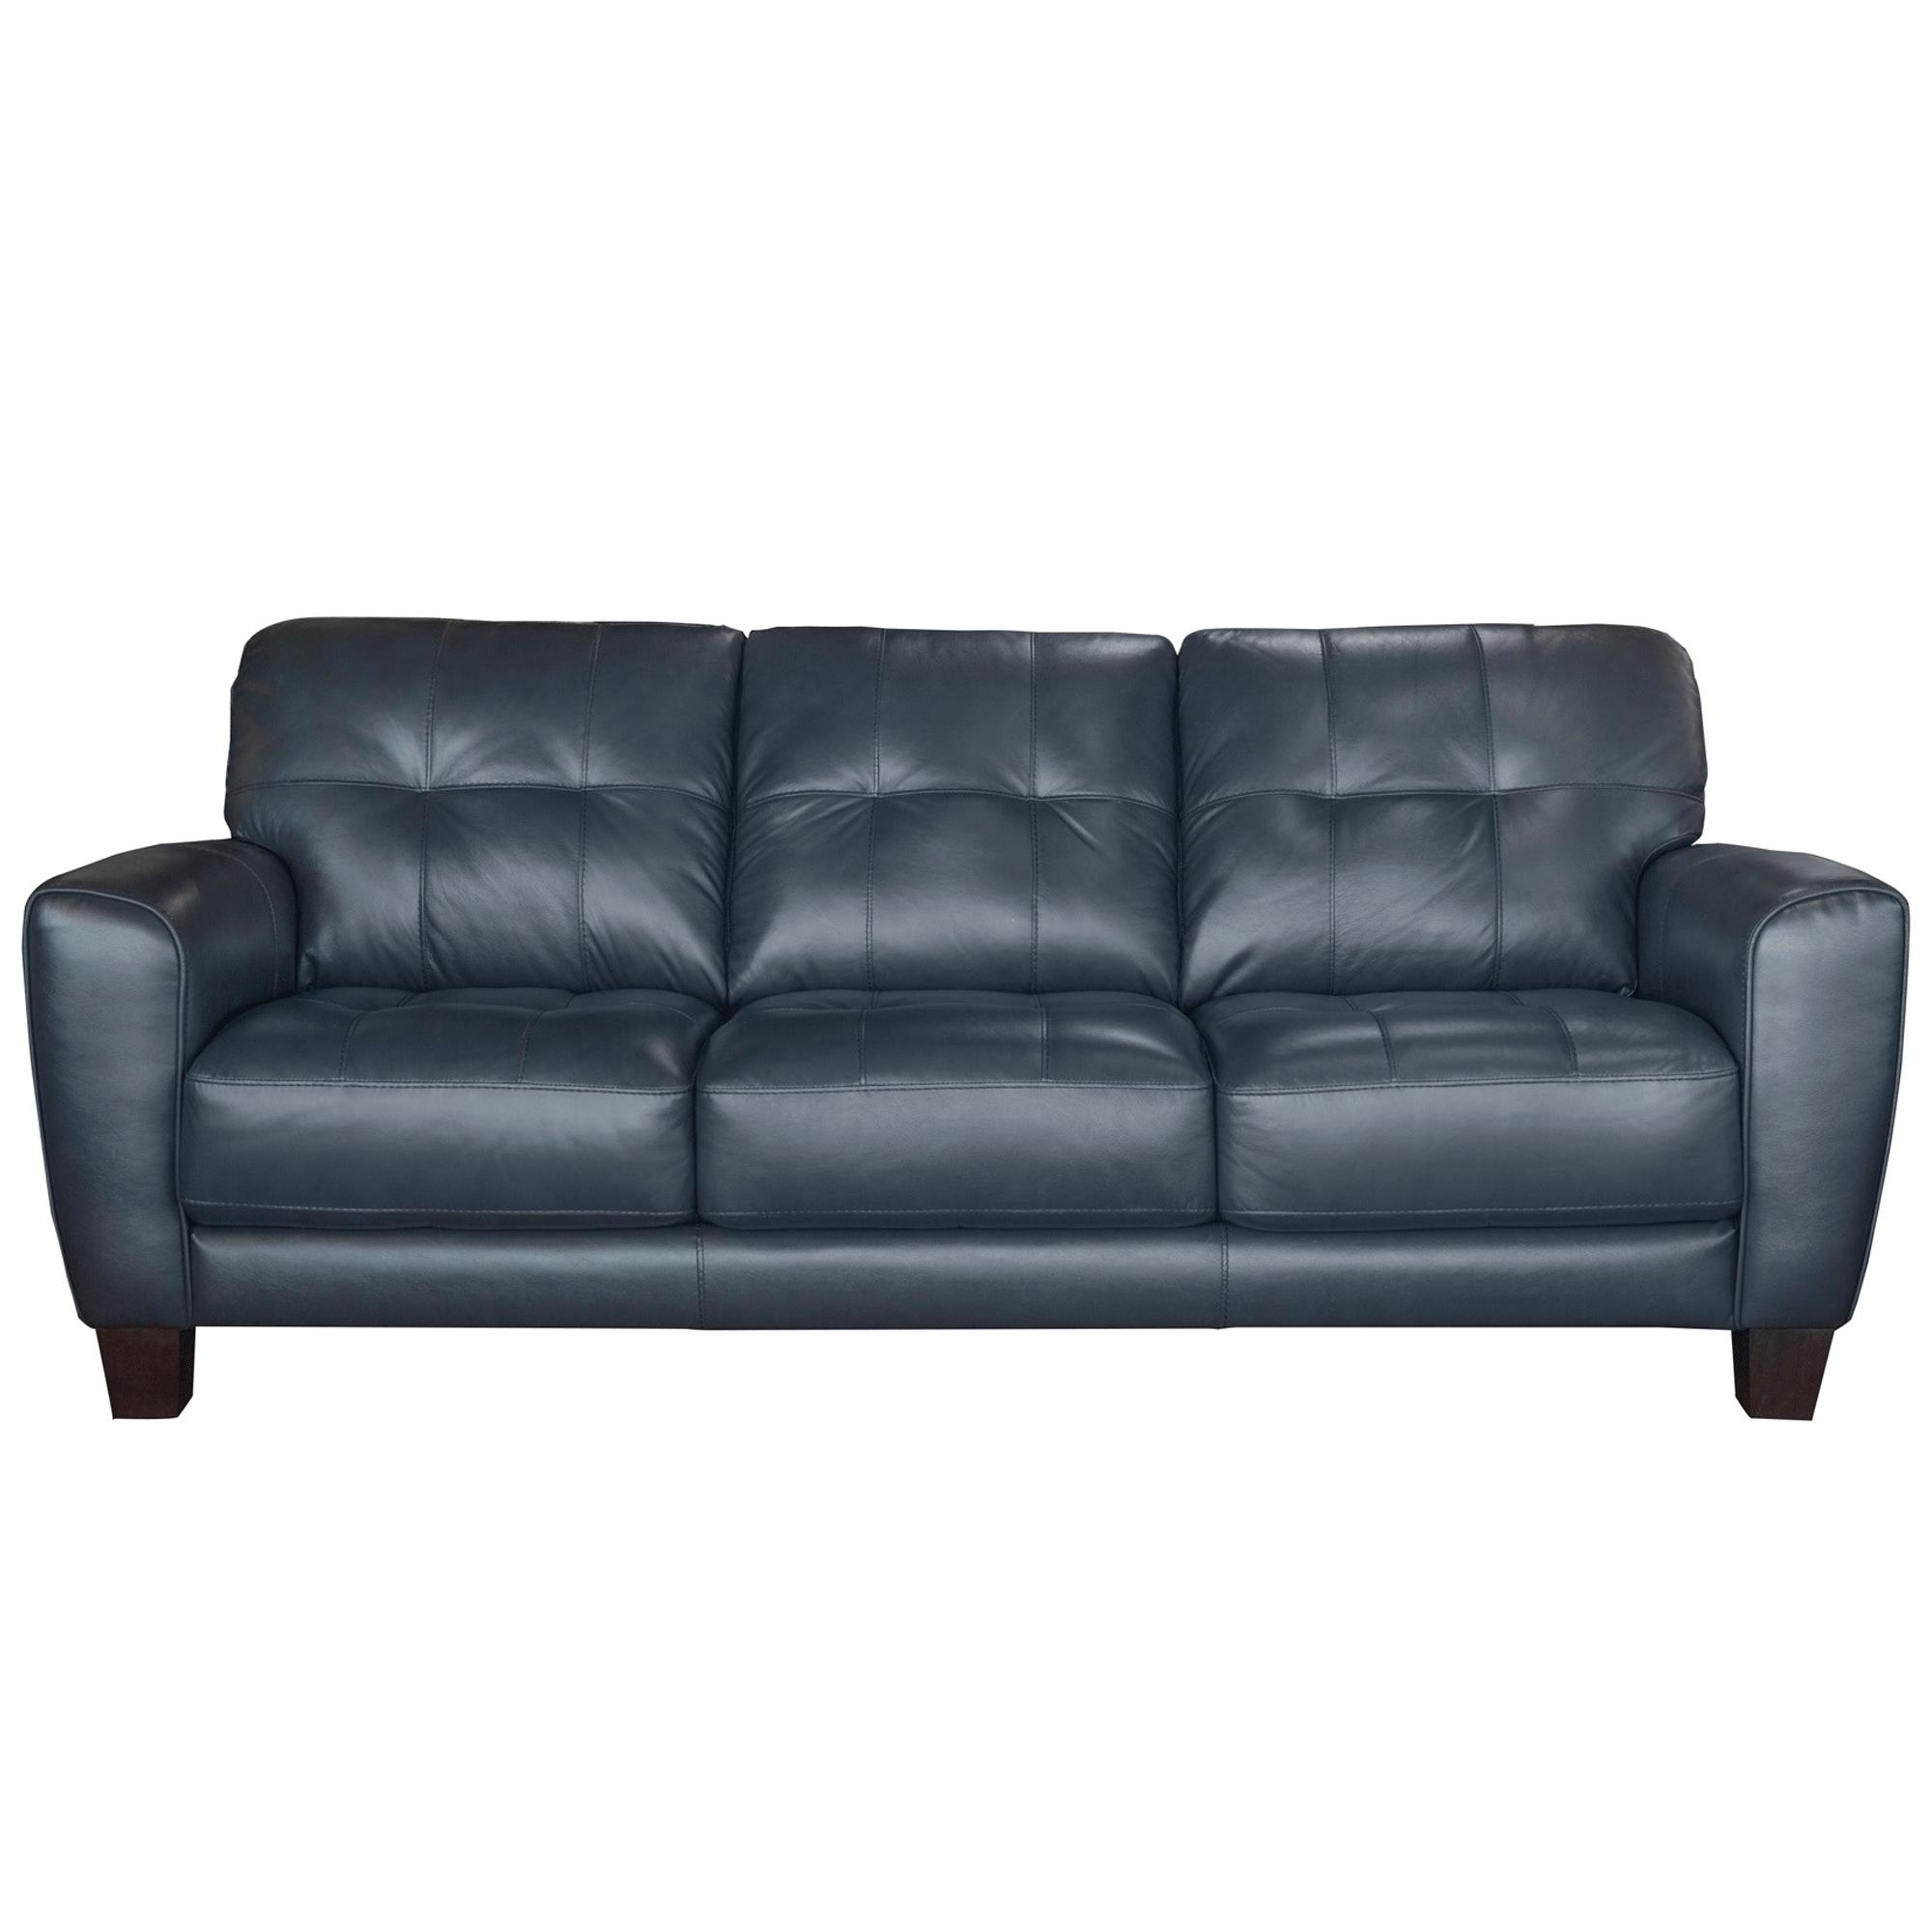 Leather – Sofas – Living Room – Bernie & Phyl's Furniture Throughout Leather Sofas (Image 12 of 21)